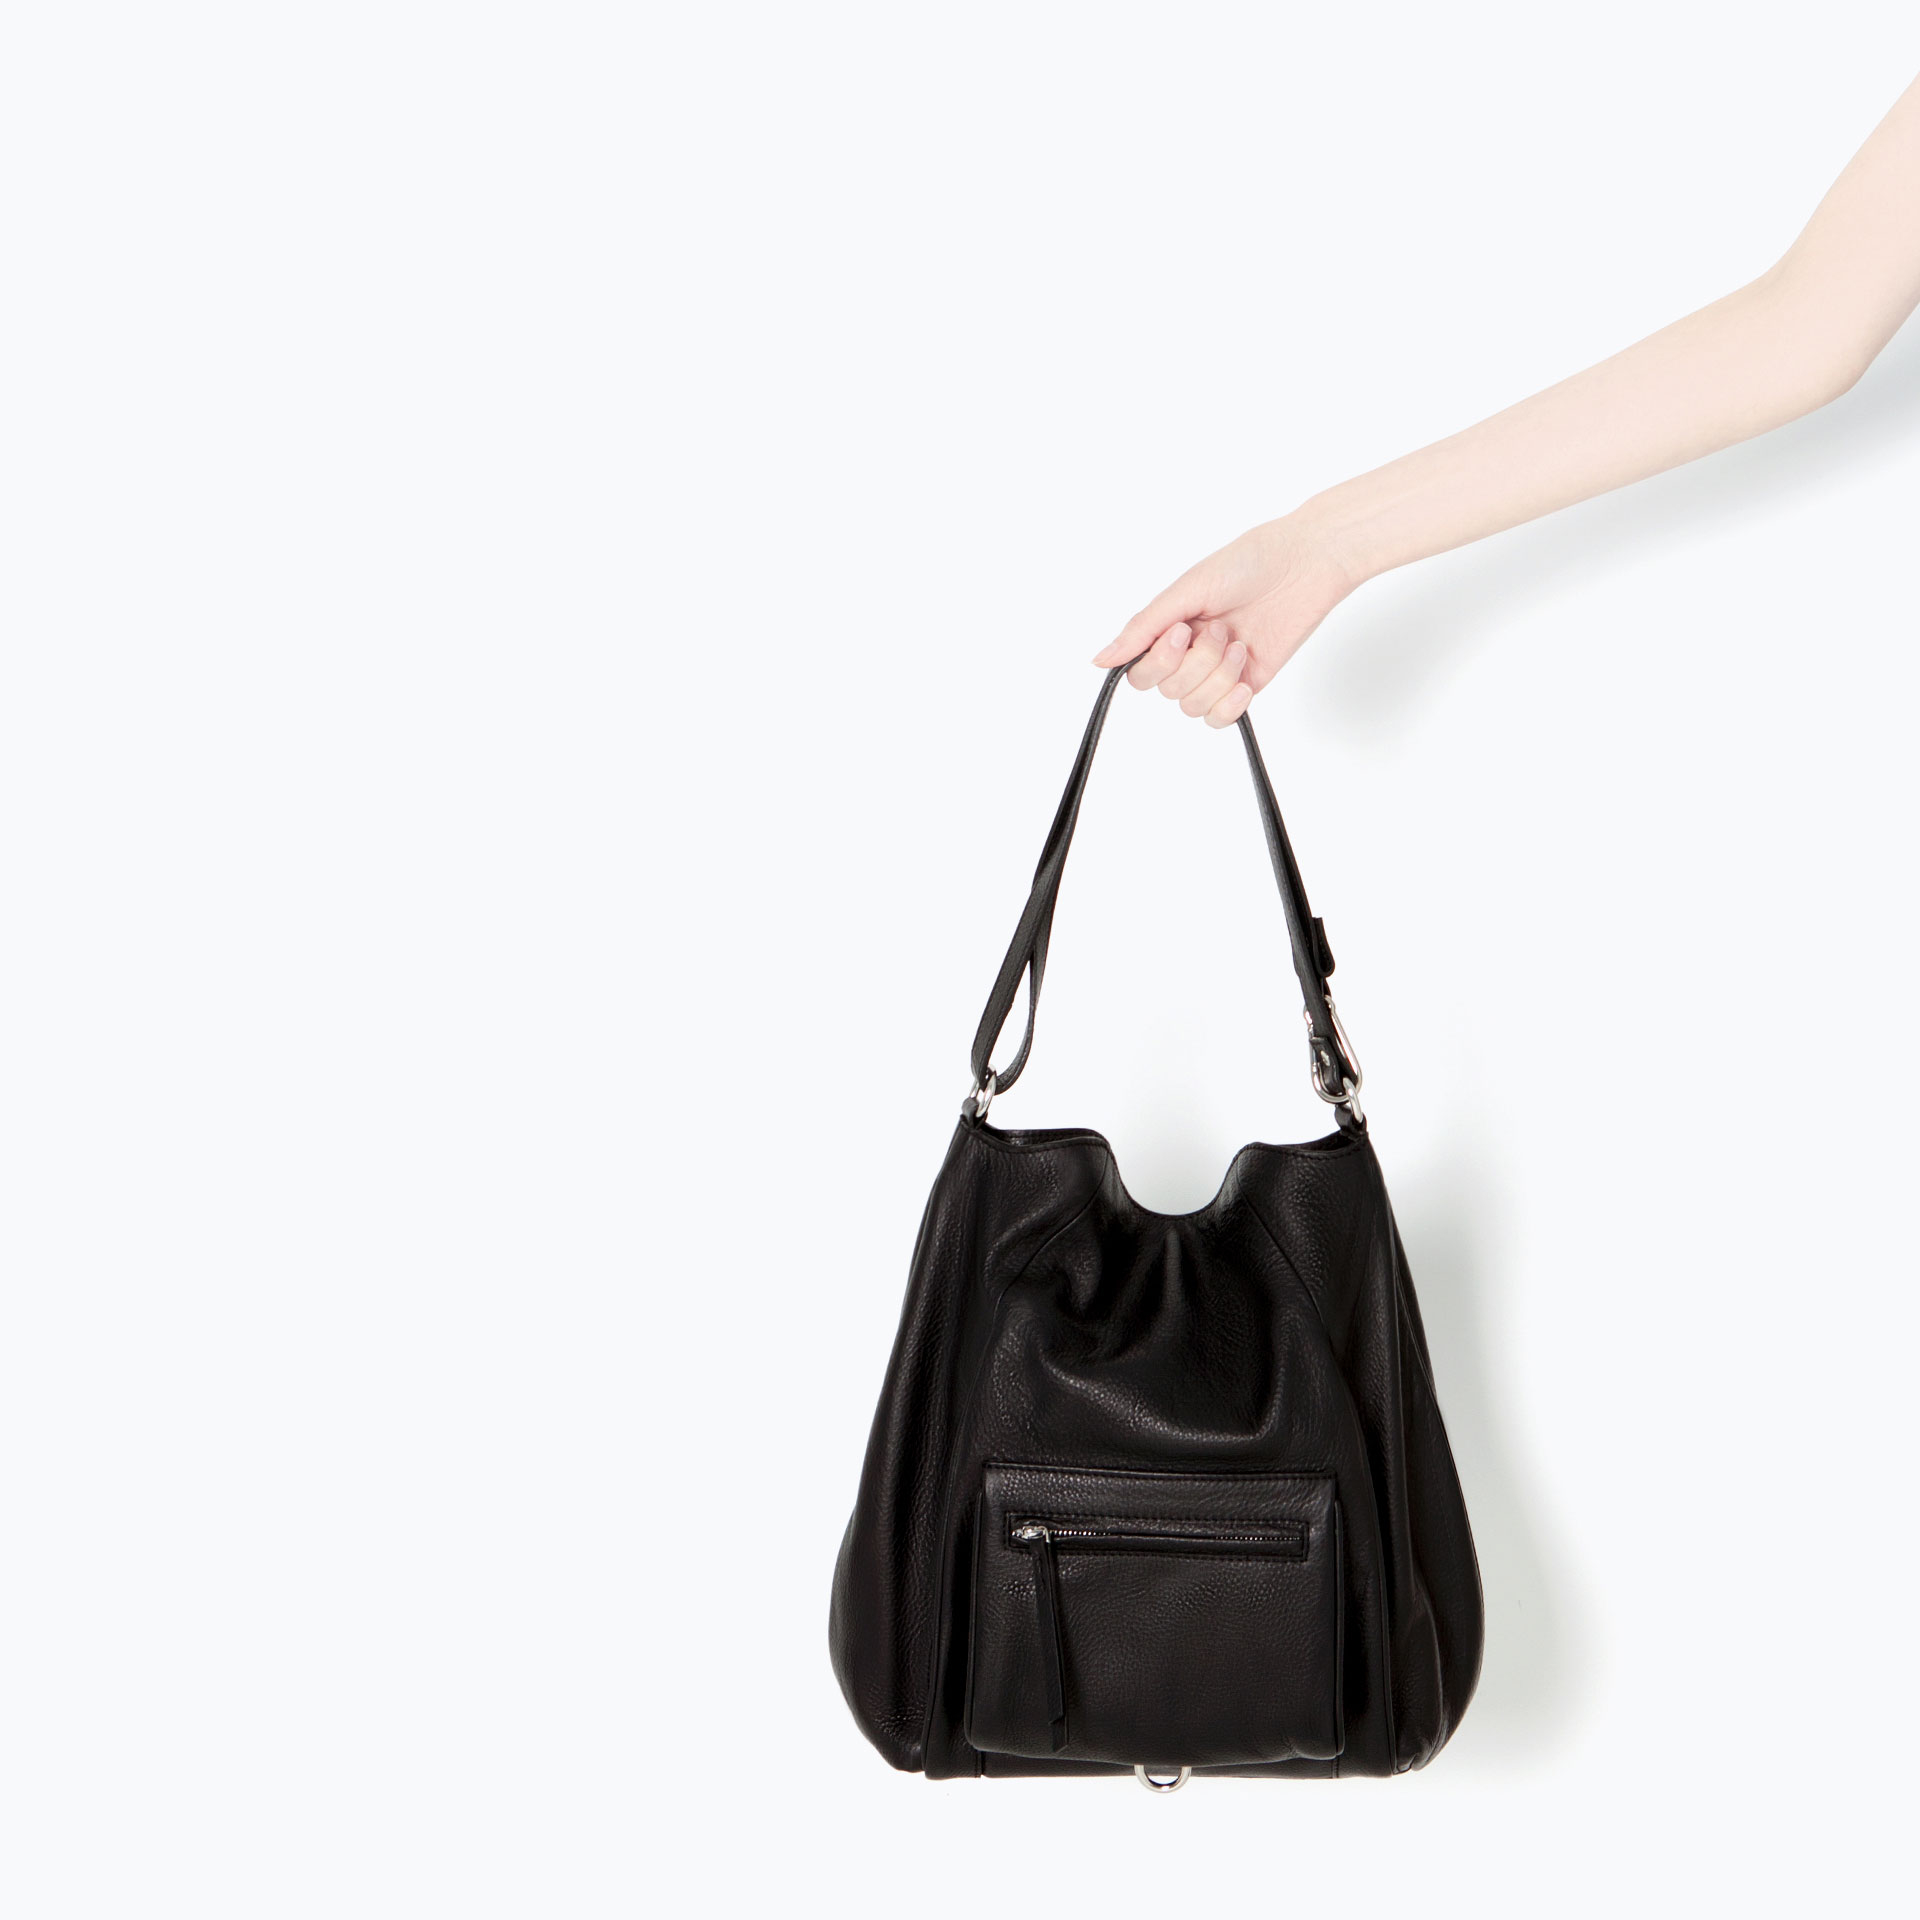 Zara Leather Bucket Bag with Front Pocket in Black | Lyst